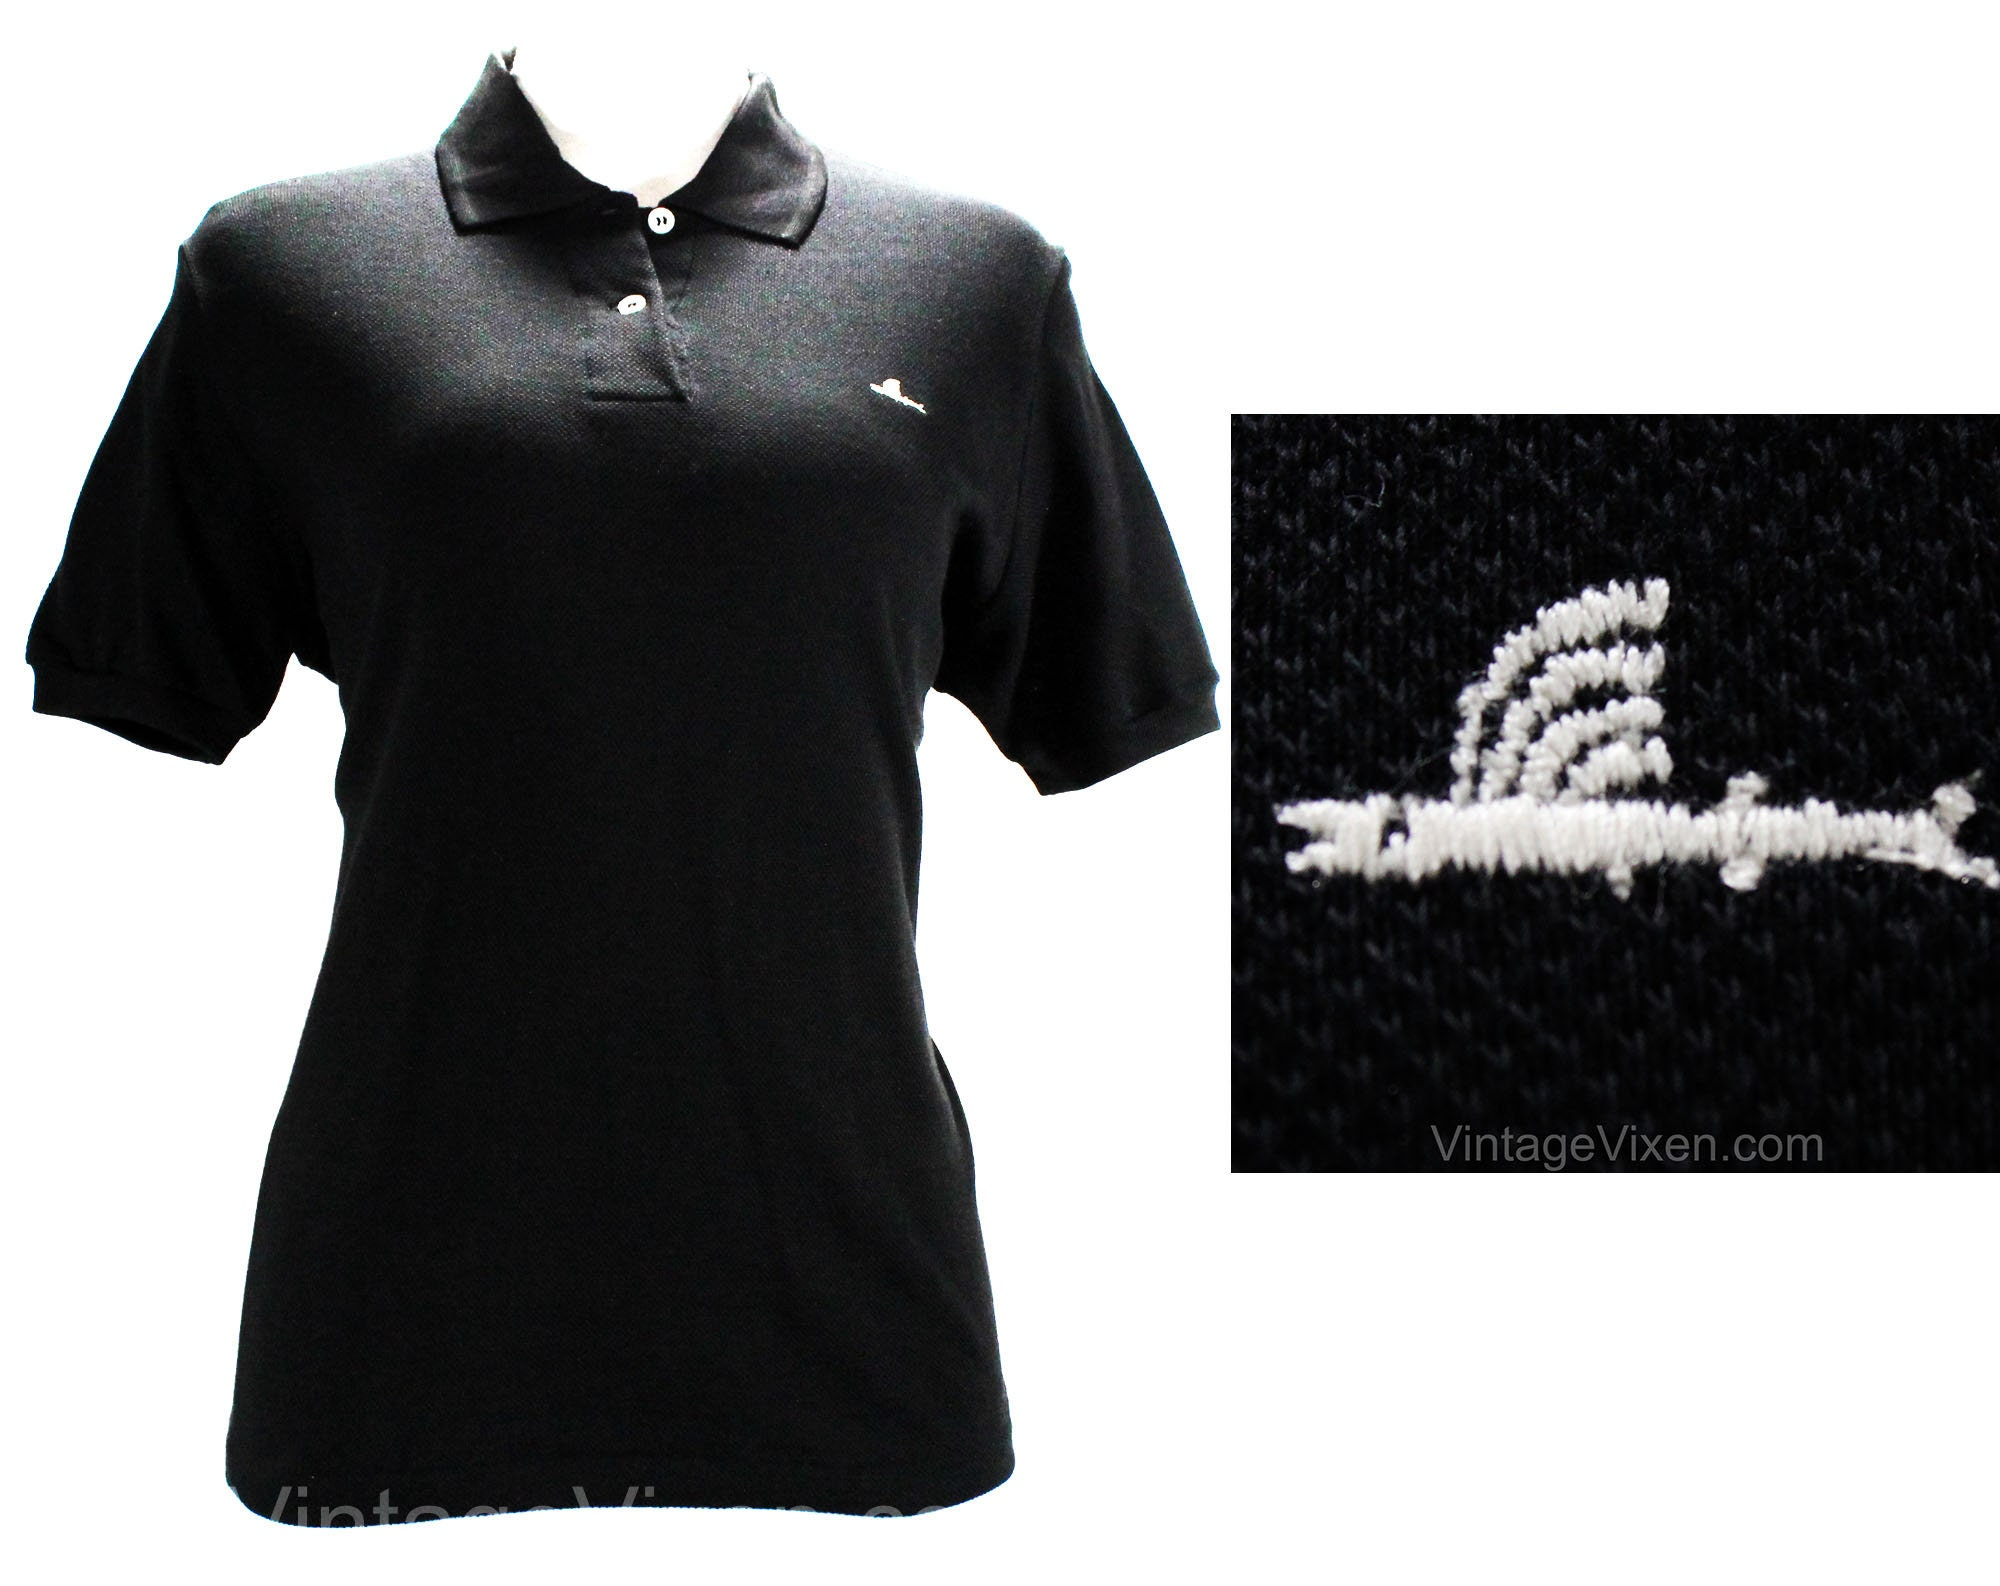 1950s Men's Ties, Bow Ties – Vintage, Skinny, Knit Small Black Polo Shirt By Catalina - 1950S Cotton Pique Knit Casual Top Flying Fish Logo Short Sleeve Summer Beach Surfer Bust 41 $45.00 AT vintagedancer.com